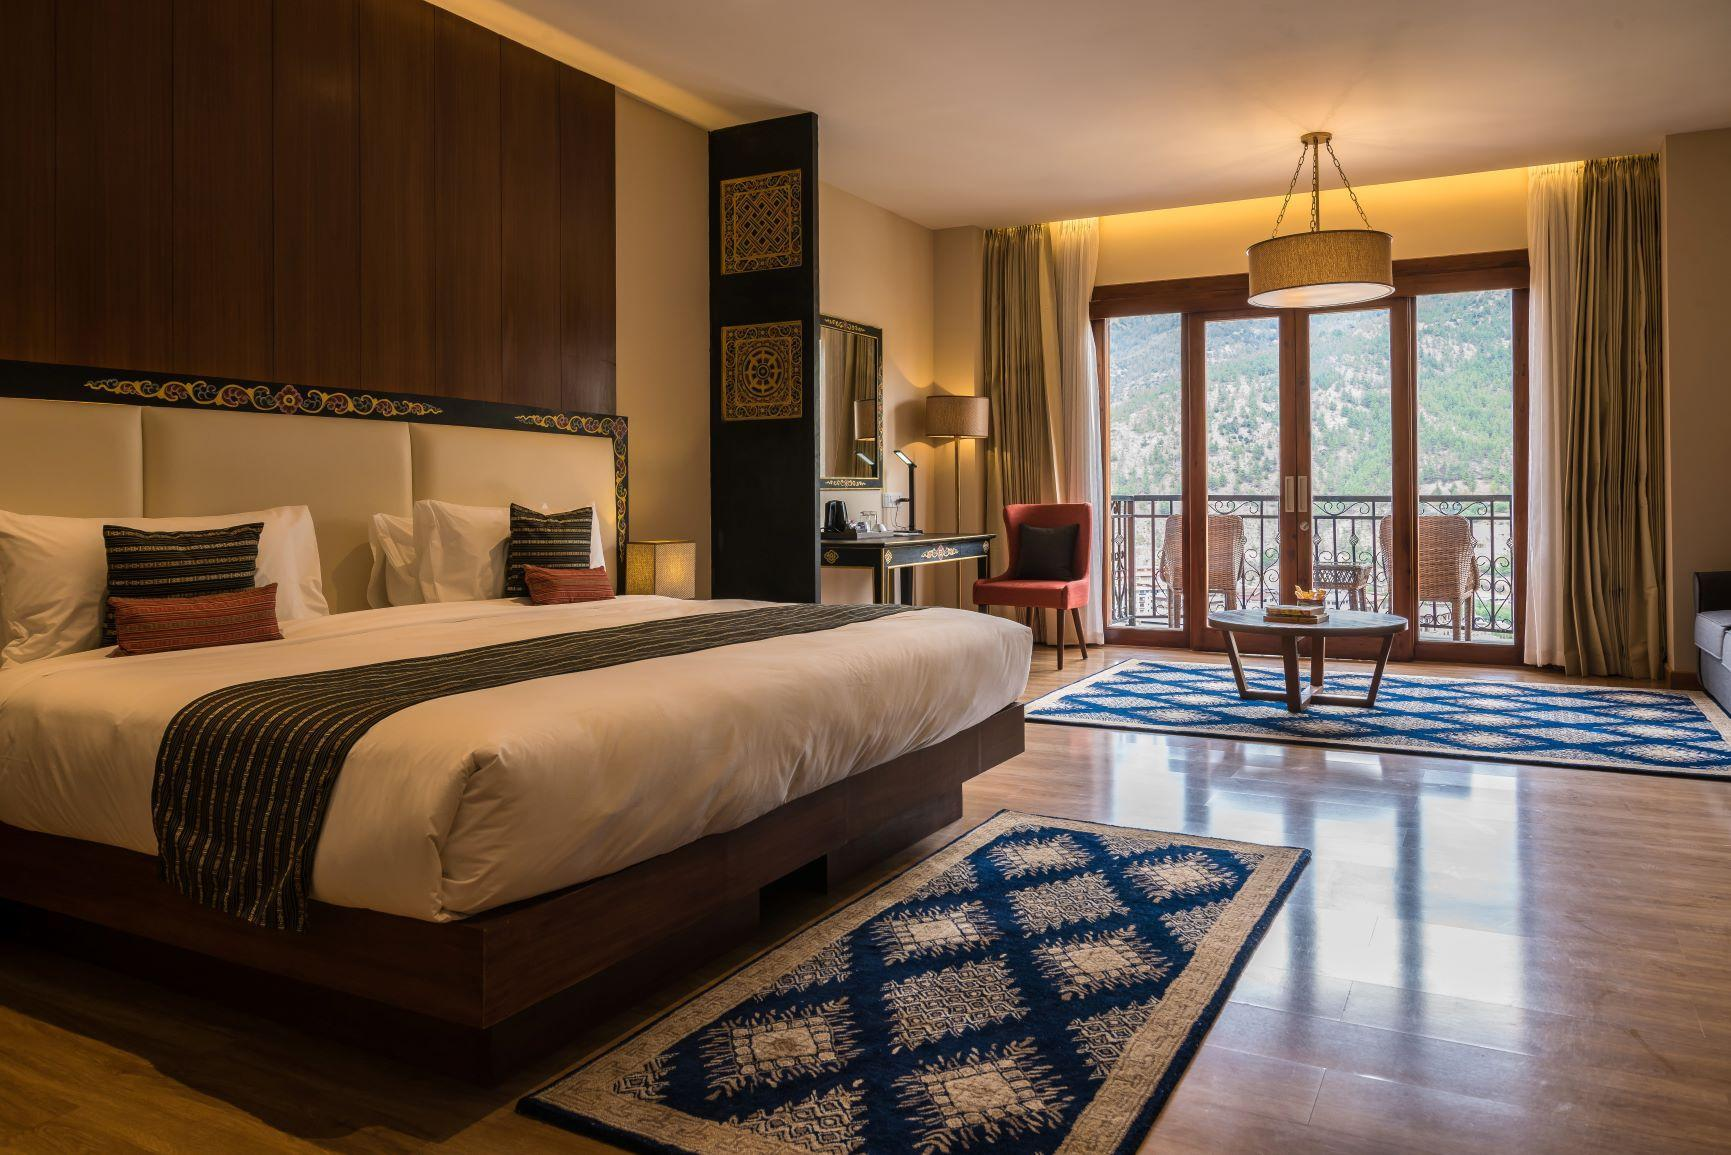 Norkhil Boutique Hotel & Spa, Chang